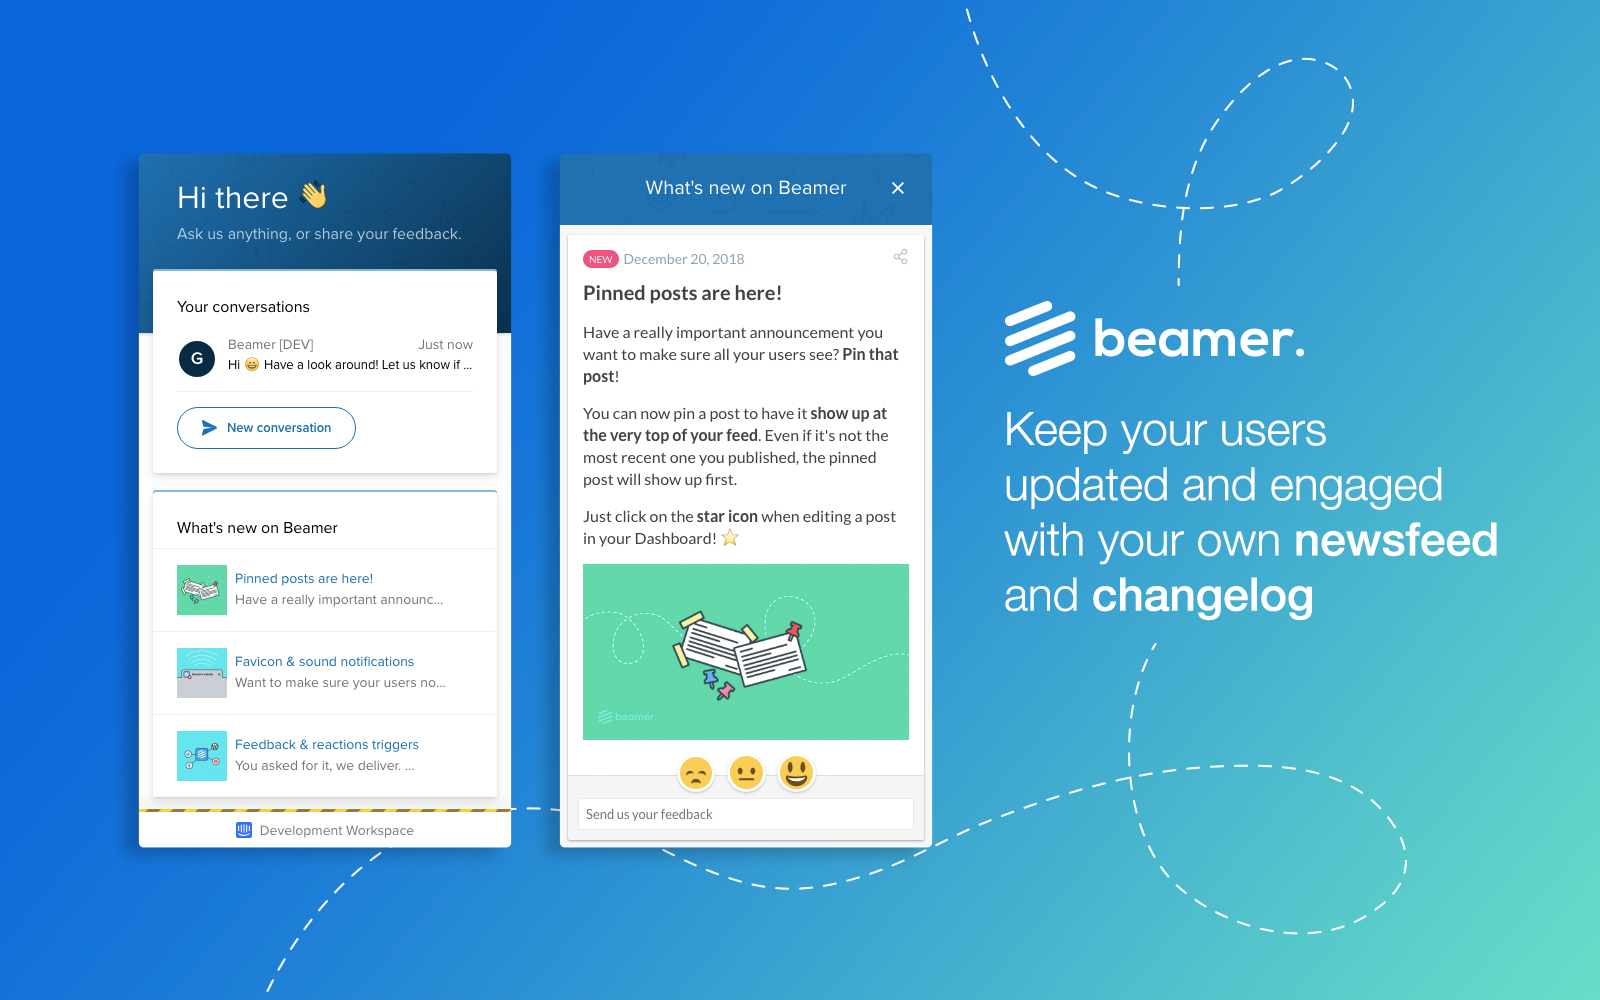 Keep your users updated and engaged with your own newsfeed and changelog